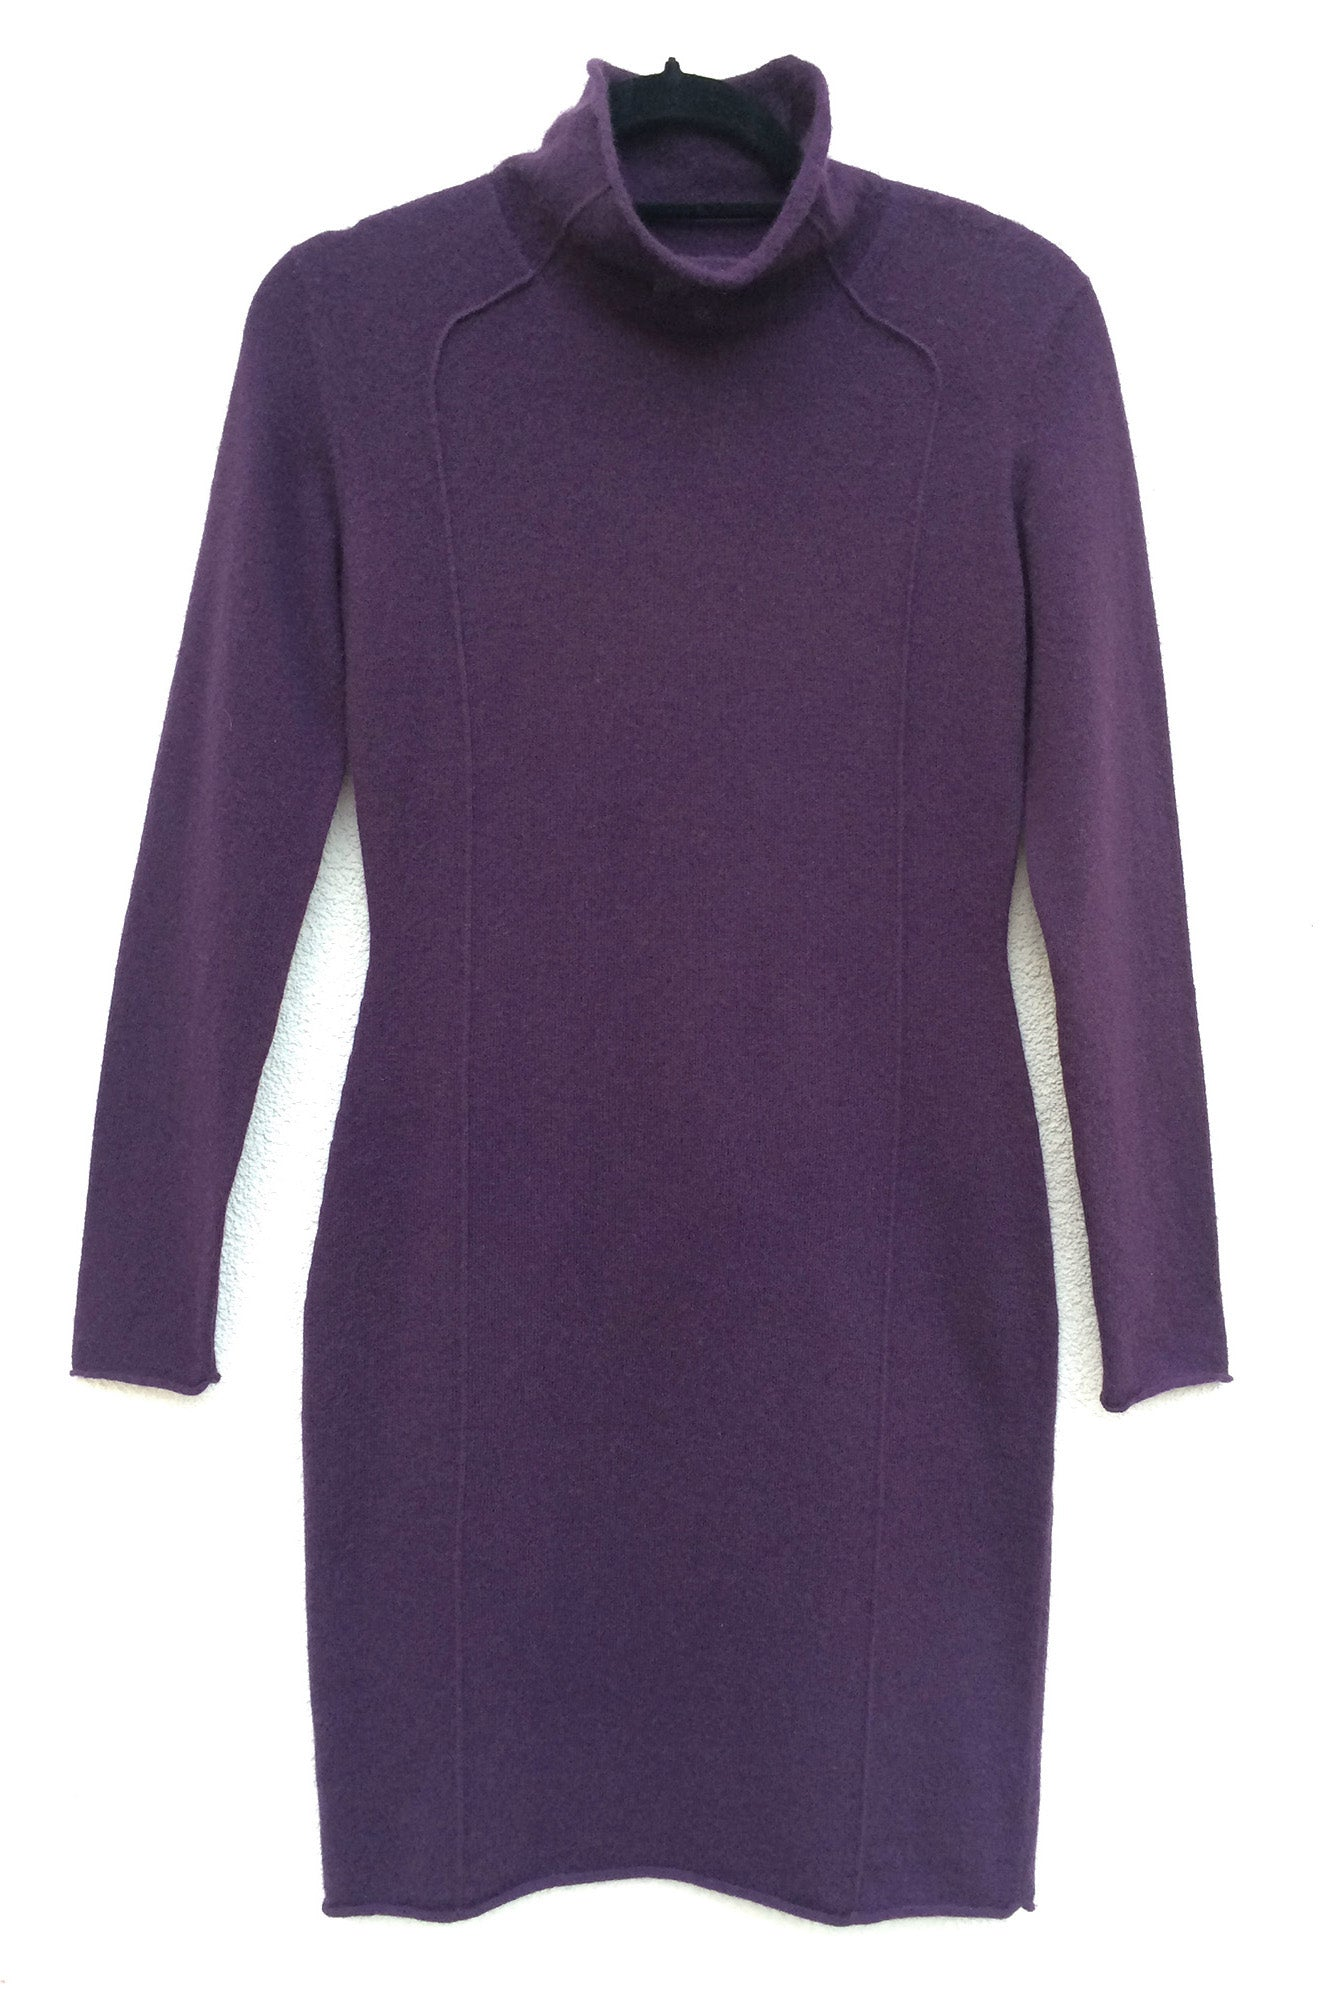 High neck fitted Cashmere knitted dress in aubergine plum purple | SEMON Cashmere